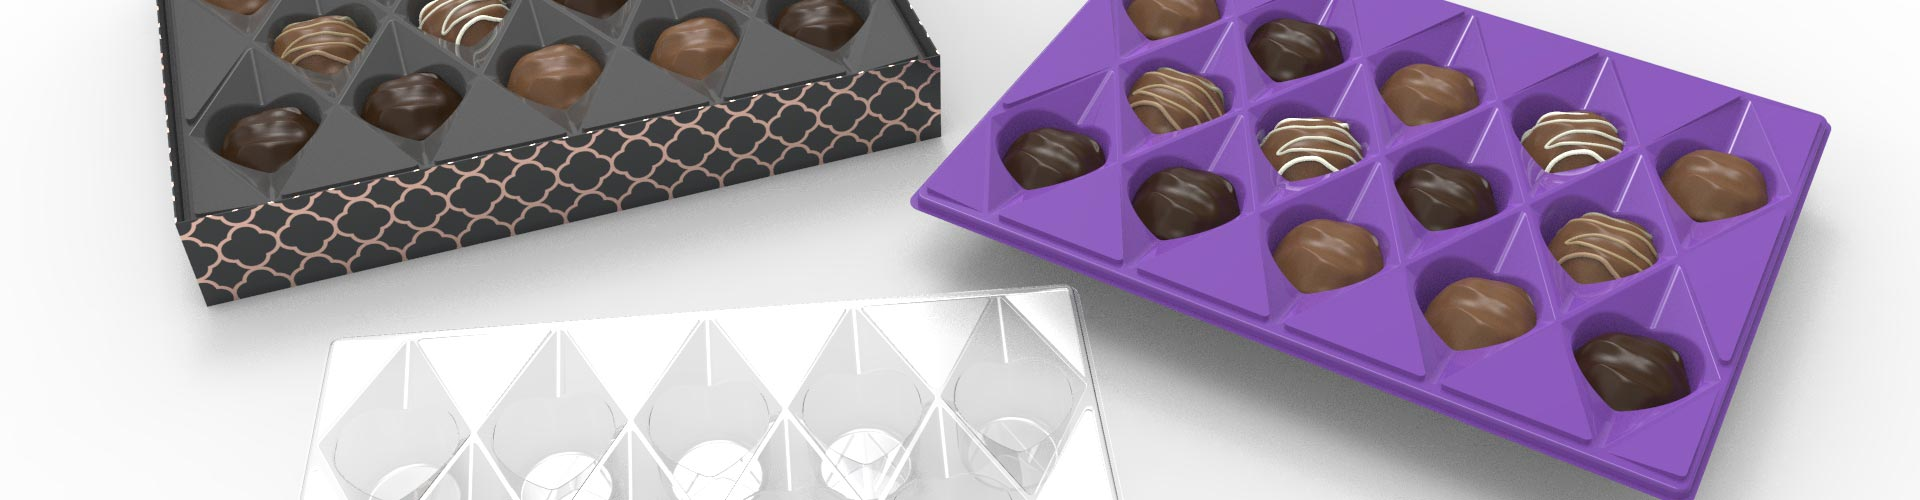 Chocolate Selection Tray